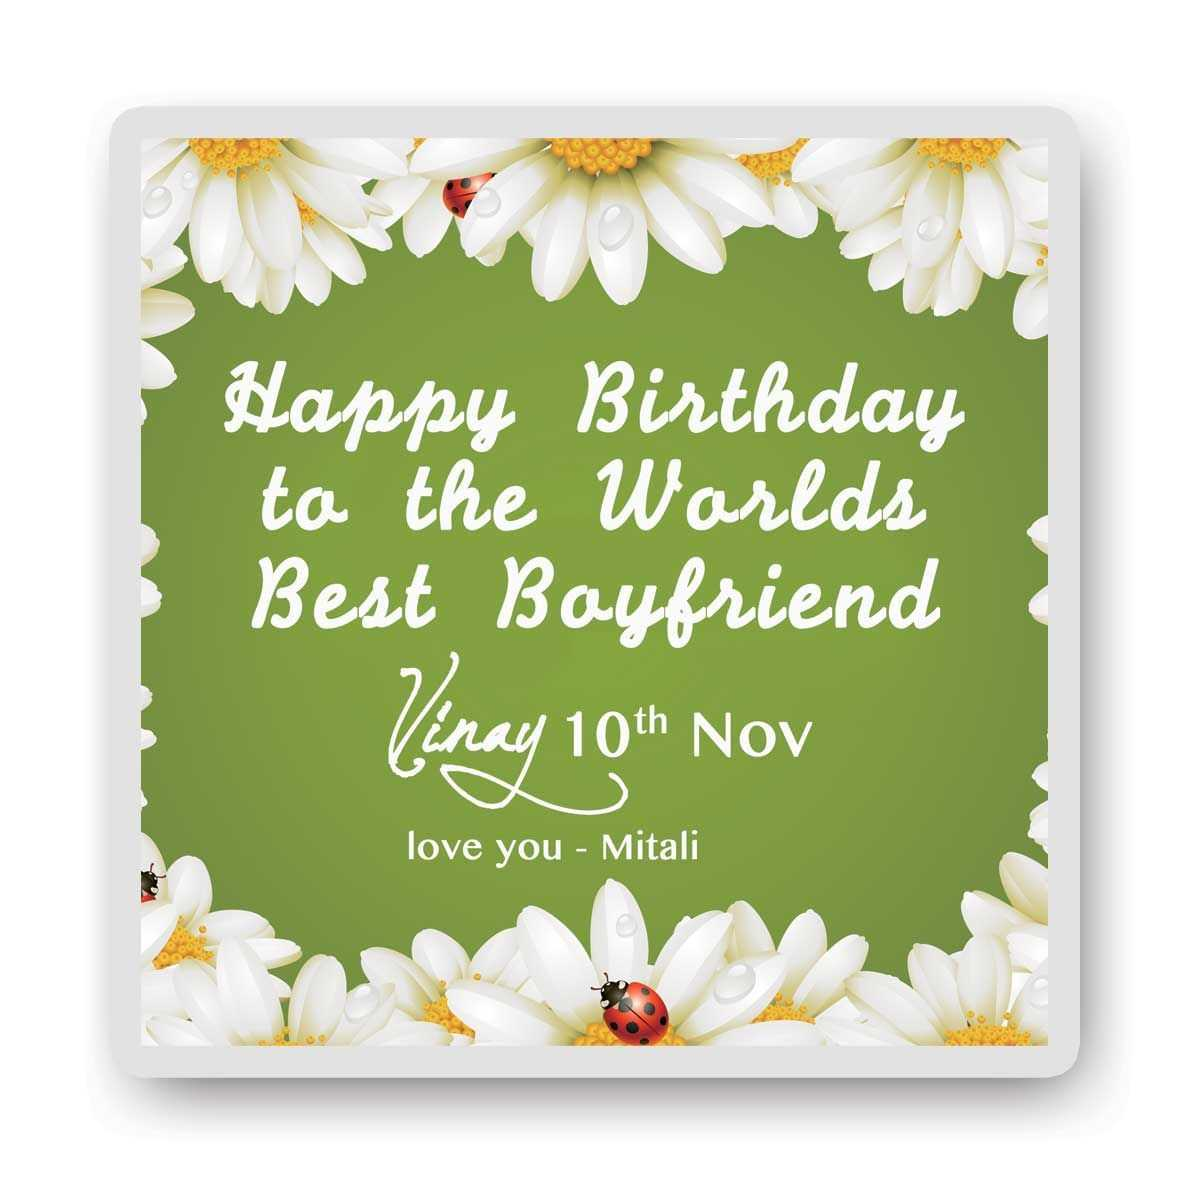 Flowery birthday personalized fridge magnet gifts for for Personalized gifts for boyfriend birthday